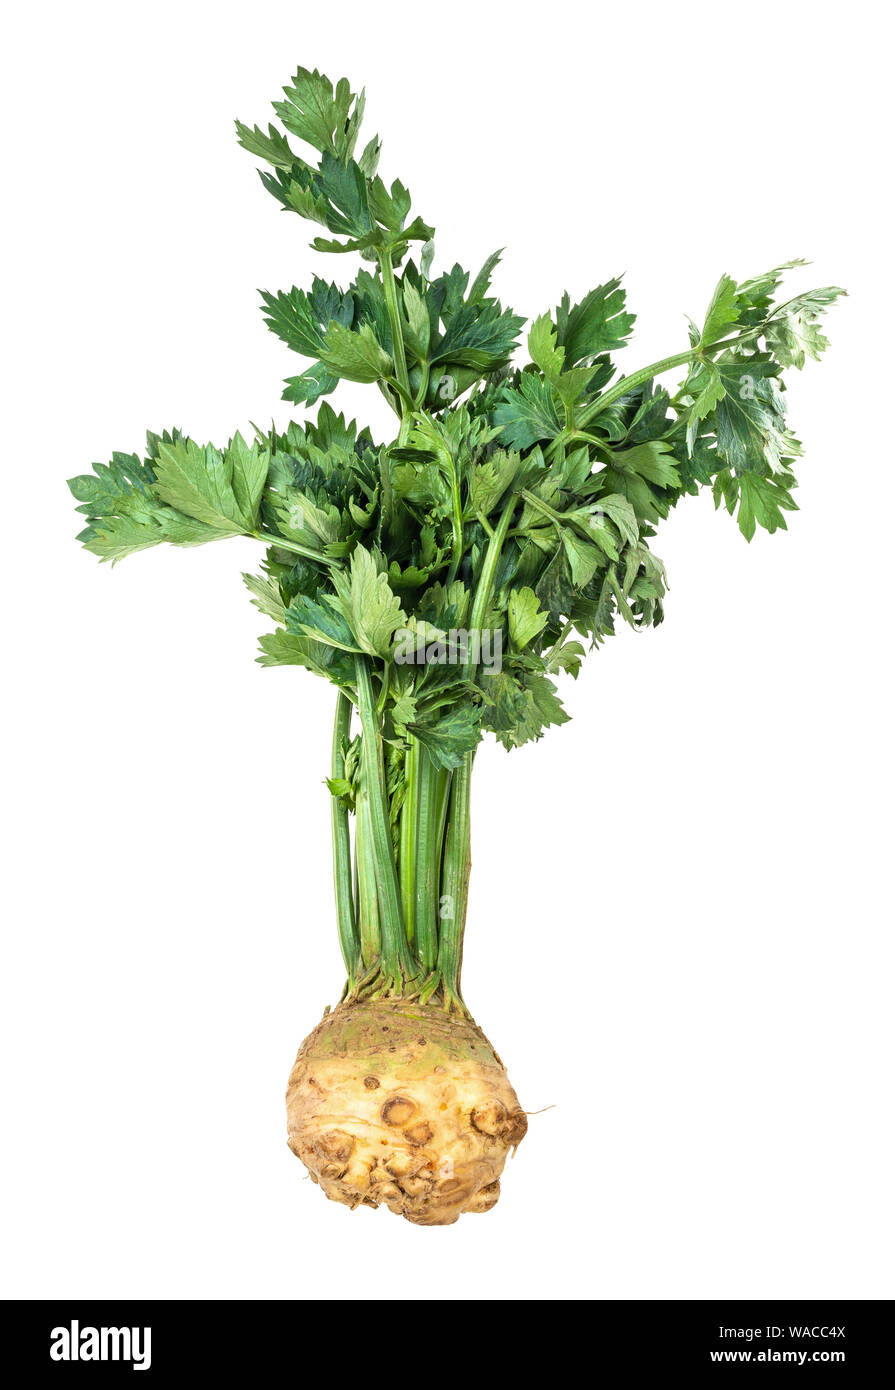 fresh organic celeriac (celery root) with greens cutout on white background Stock Photo